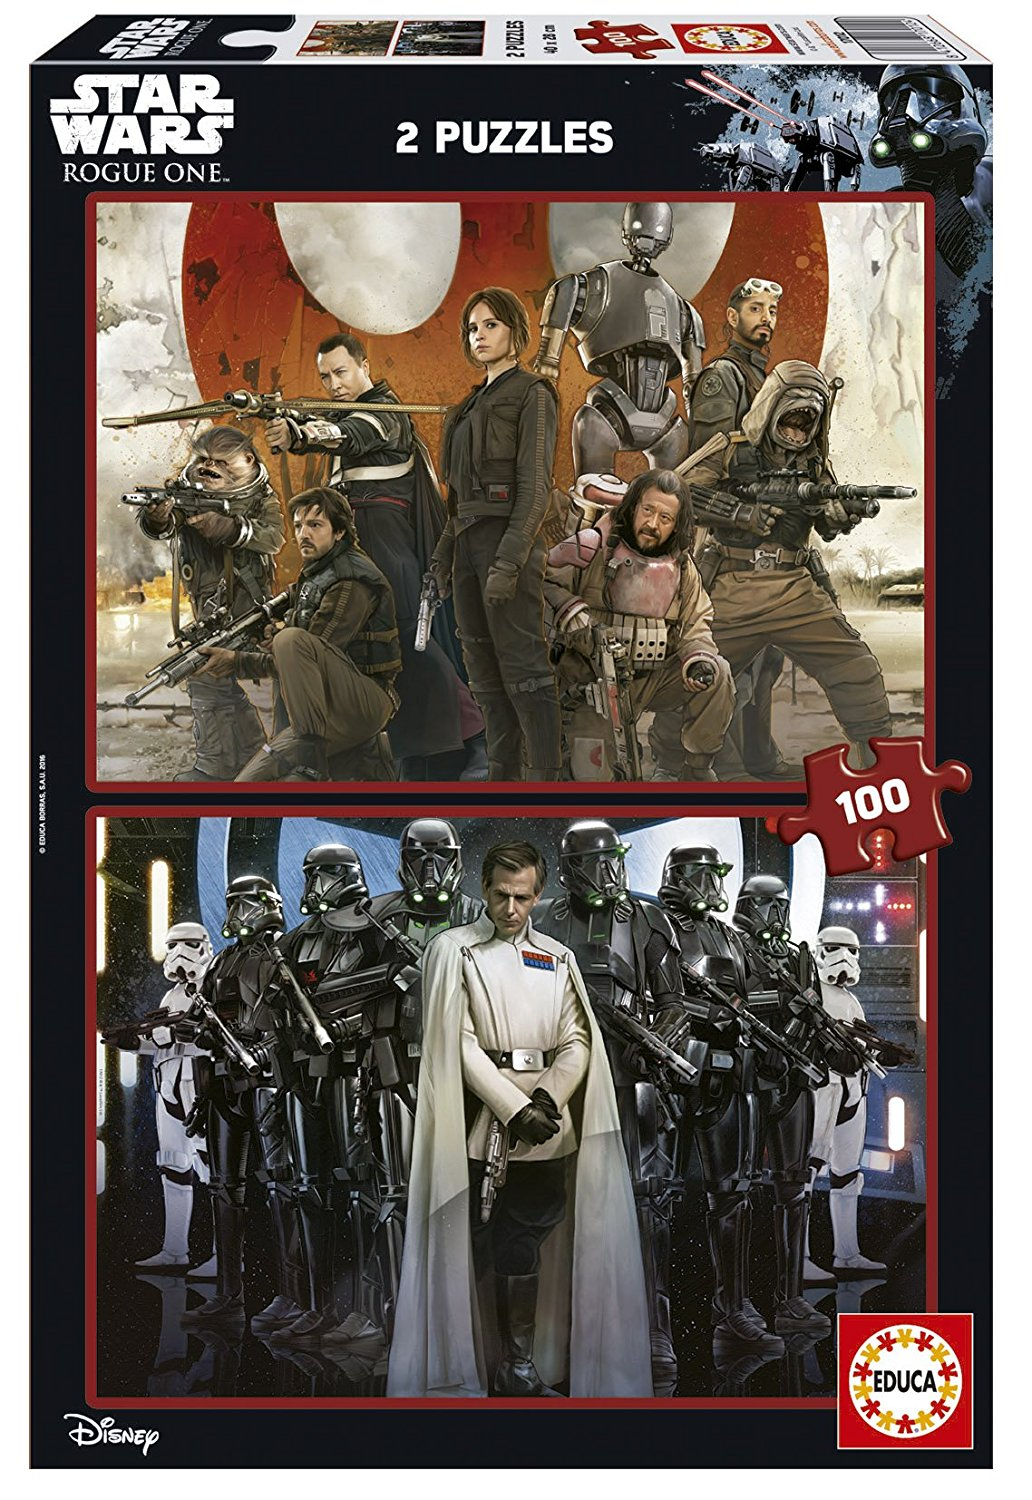 2-puzzles-star-wars